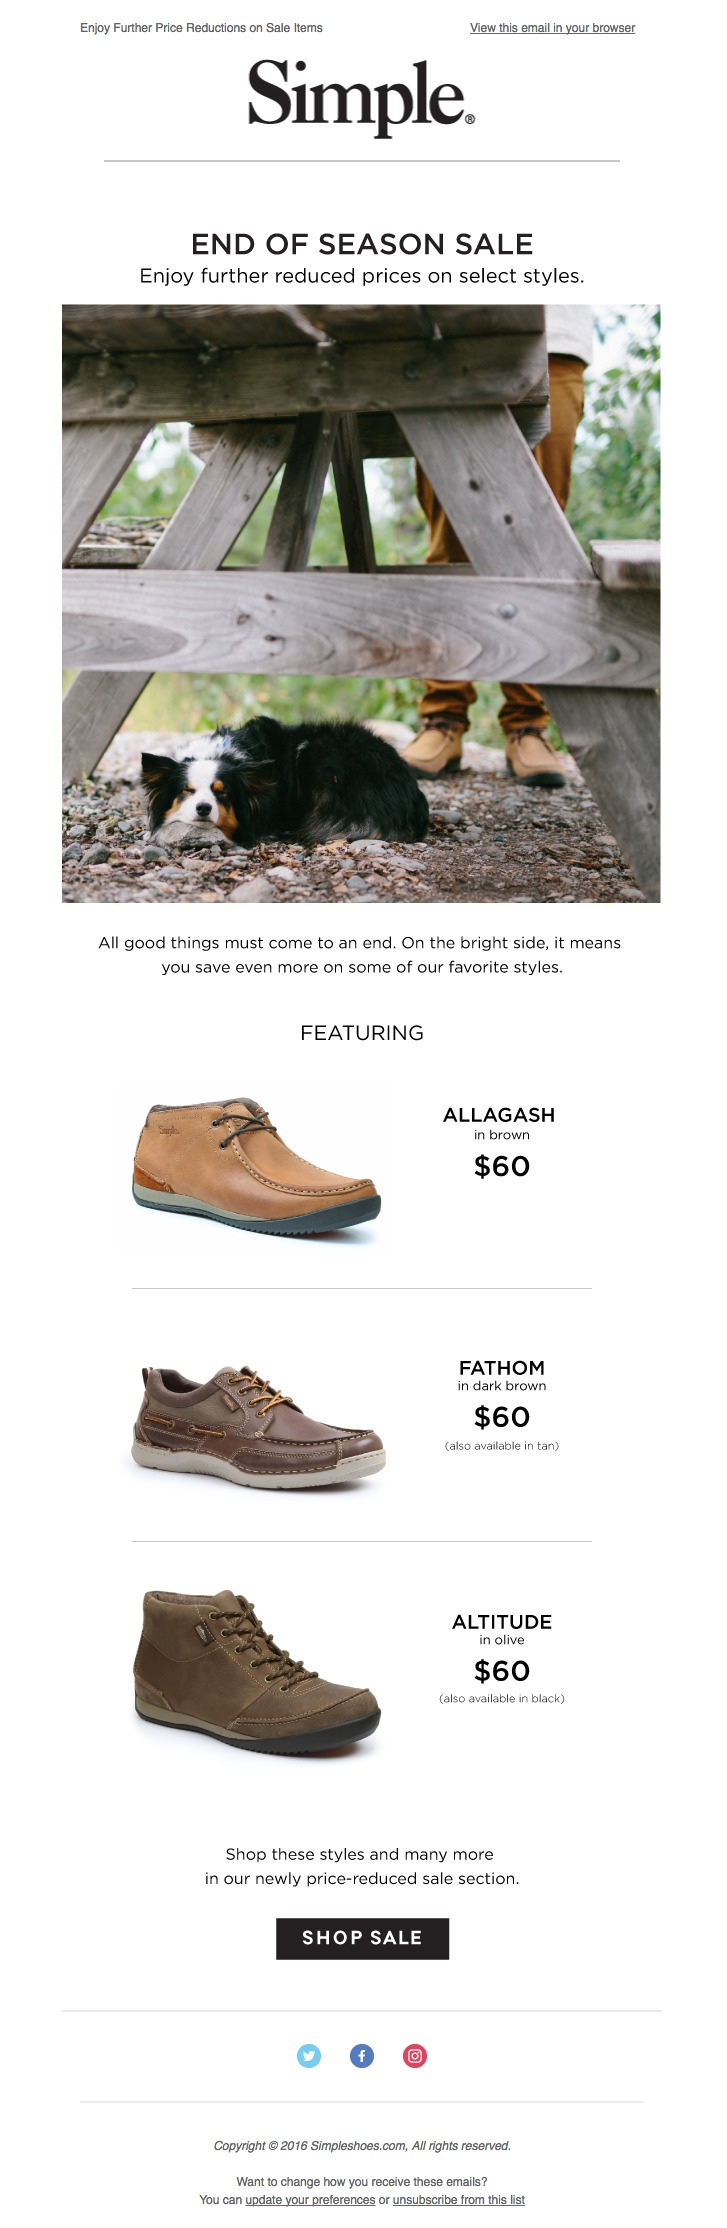 ecommerce-email-marketing-simple-shoes